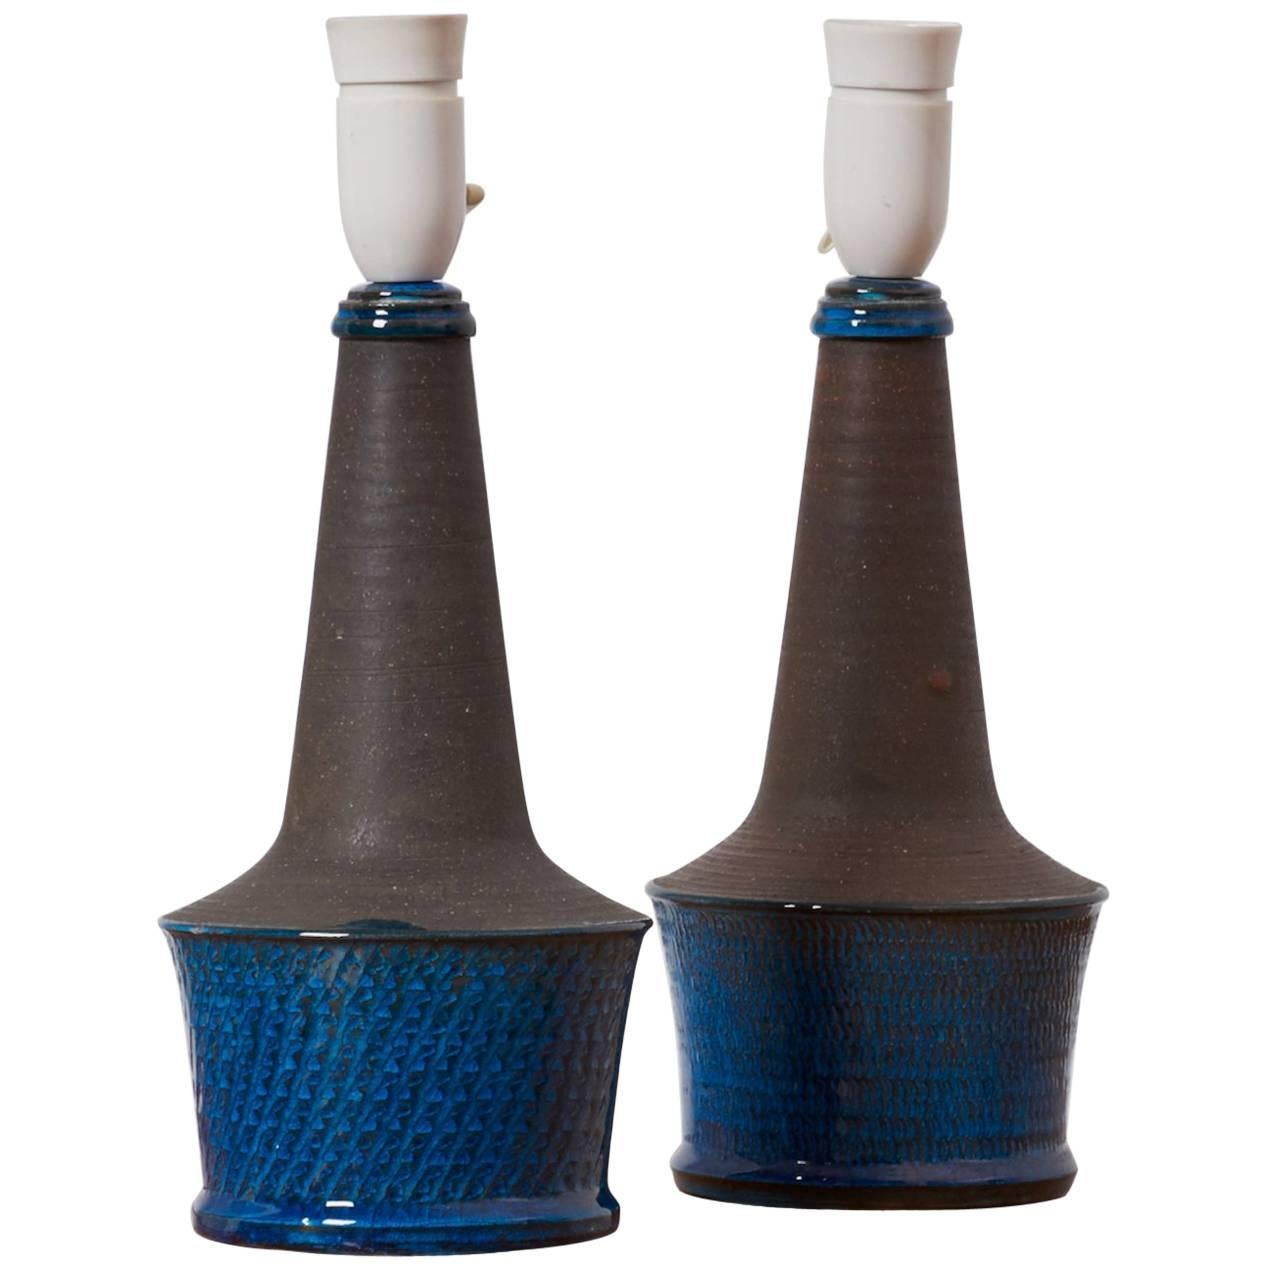 Pair of  Blue / Gray Table Lamps by Nils Kähler, Denmark, 1960s